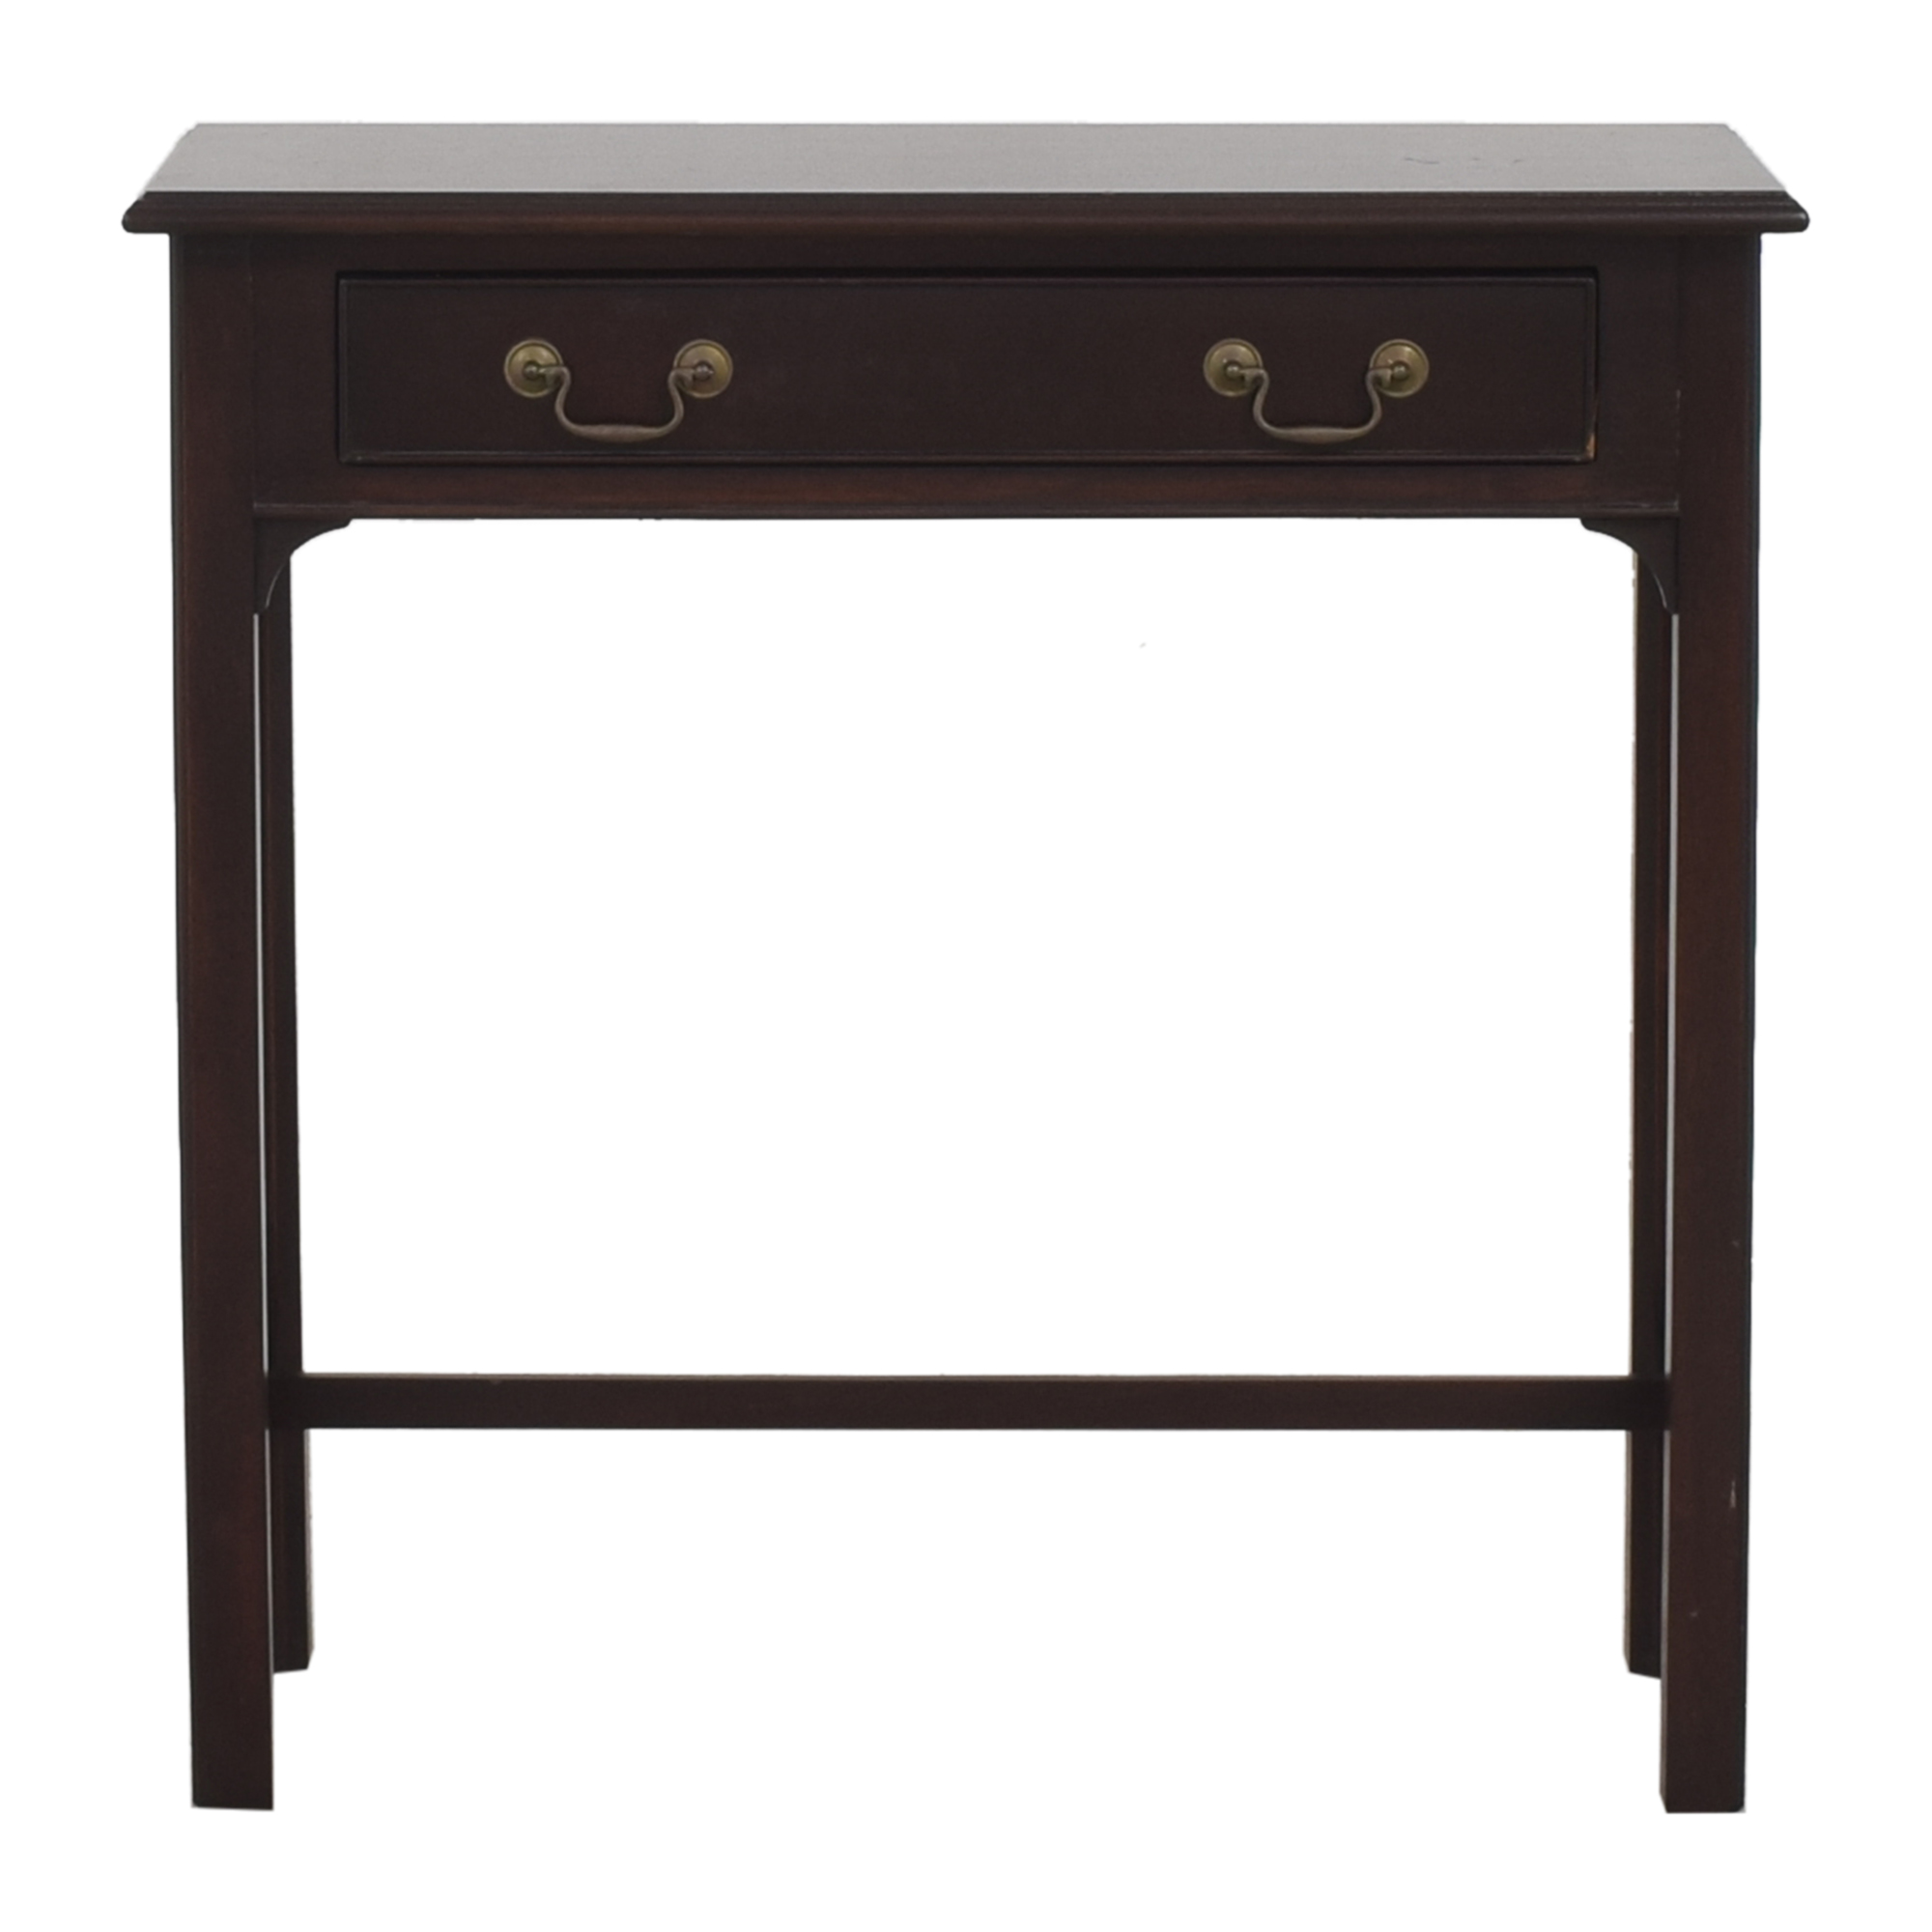 Salem Square Sofa Table / Tables